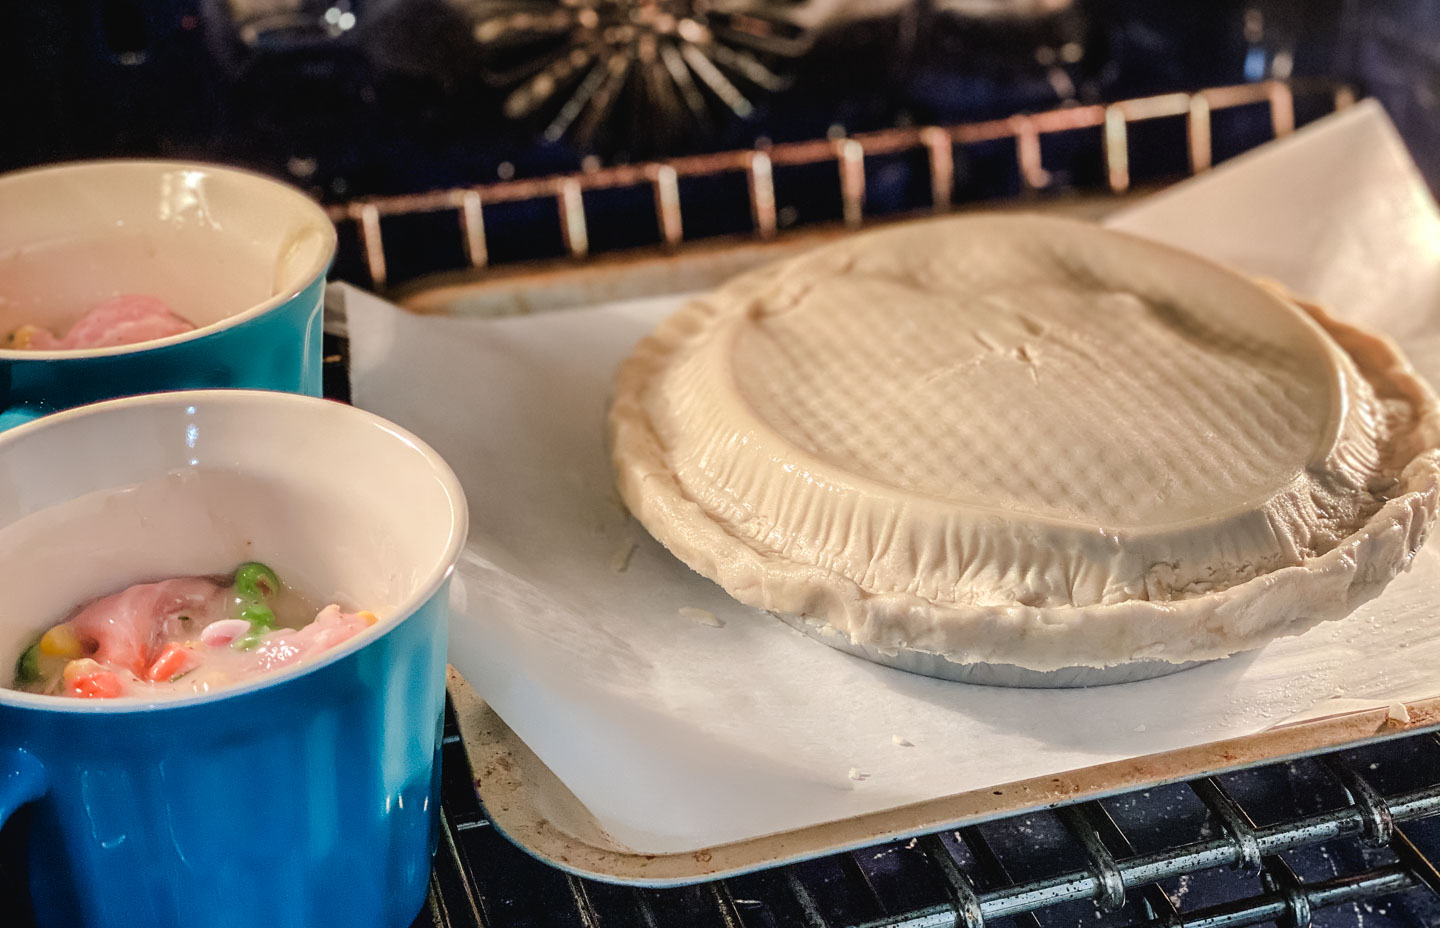 uncooked chicken pot pie in the oven with 2 blue mugs with gluten free chicken pot pie filling